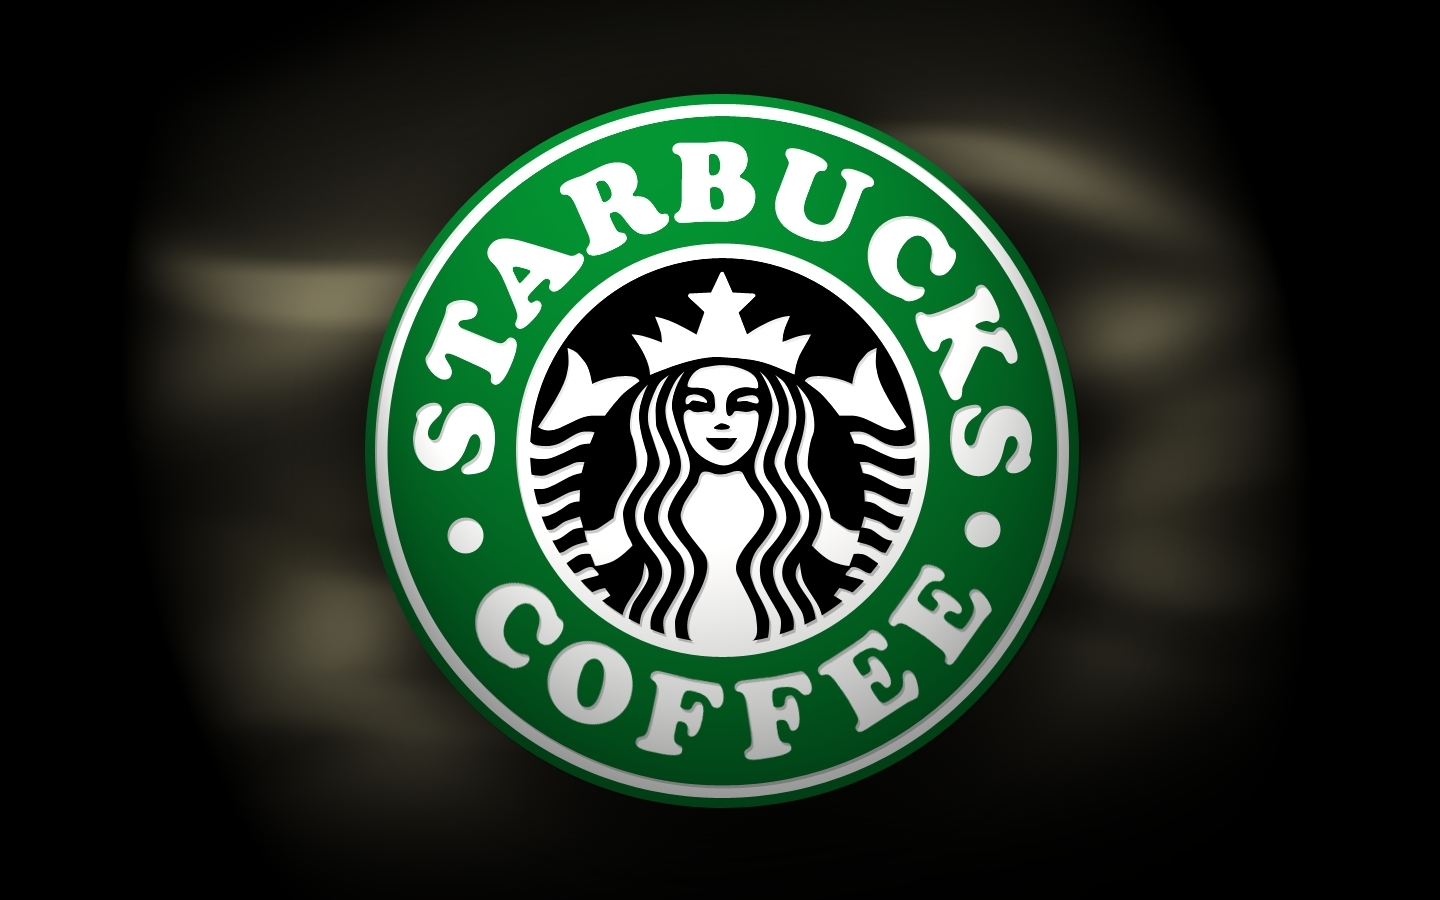 STARBUCKS COFFEE HAS 'THREE QUARTERS OF THE SAFE DAILY DOSE' IN ONE CUP